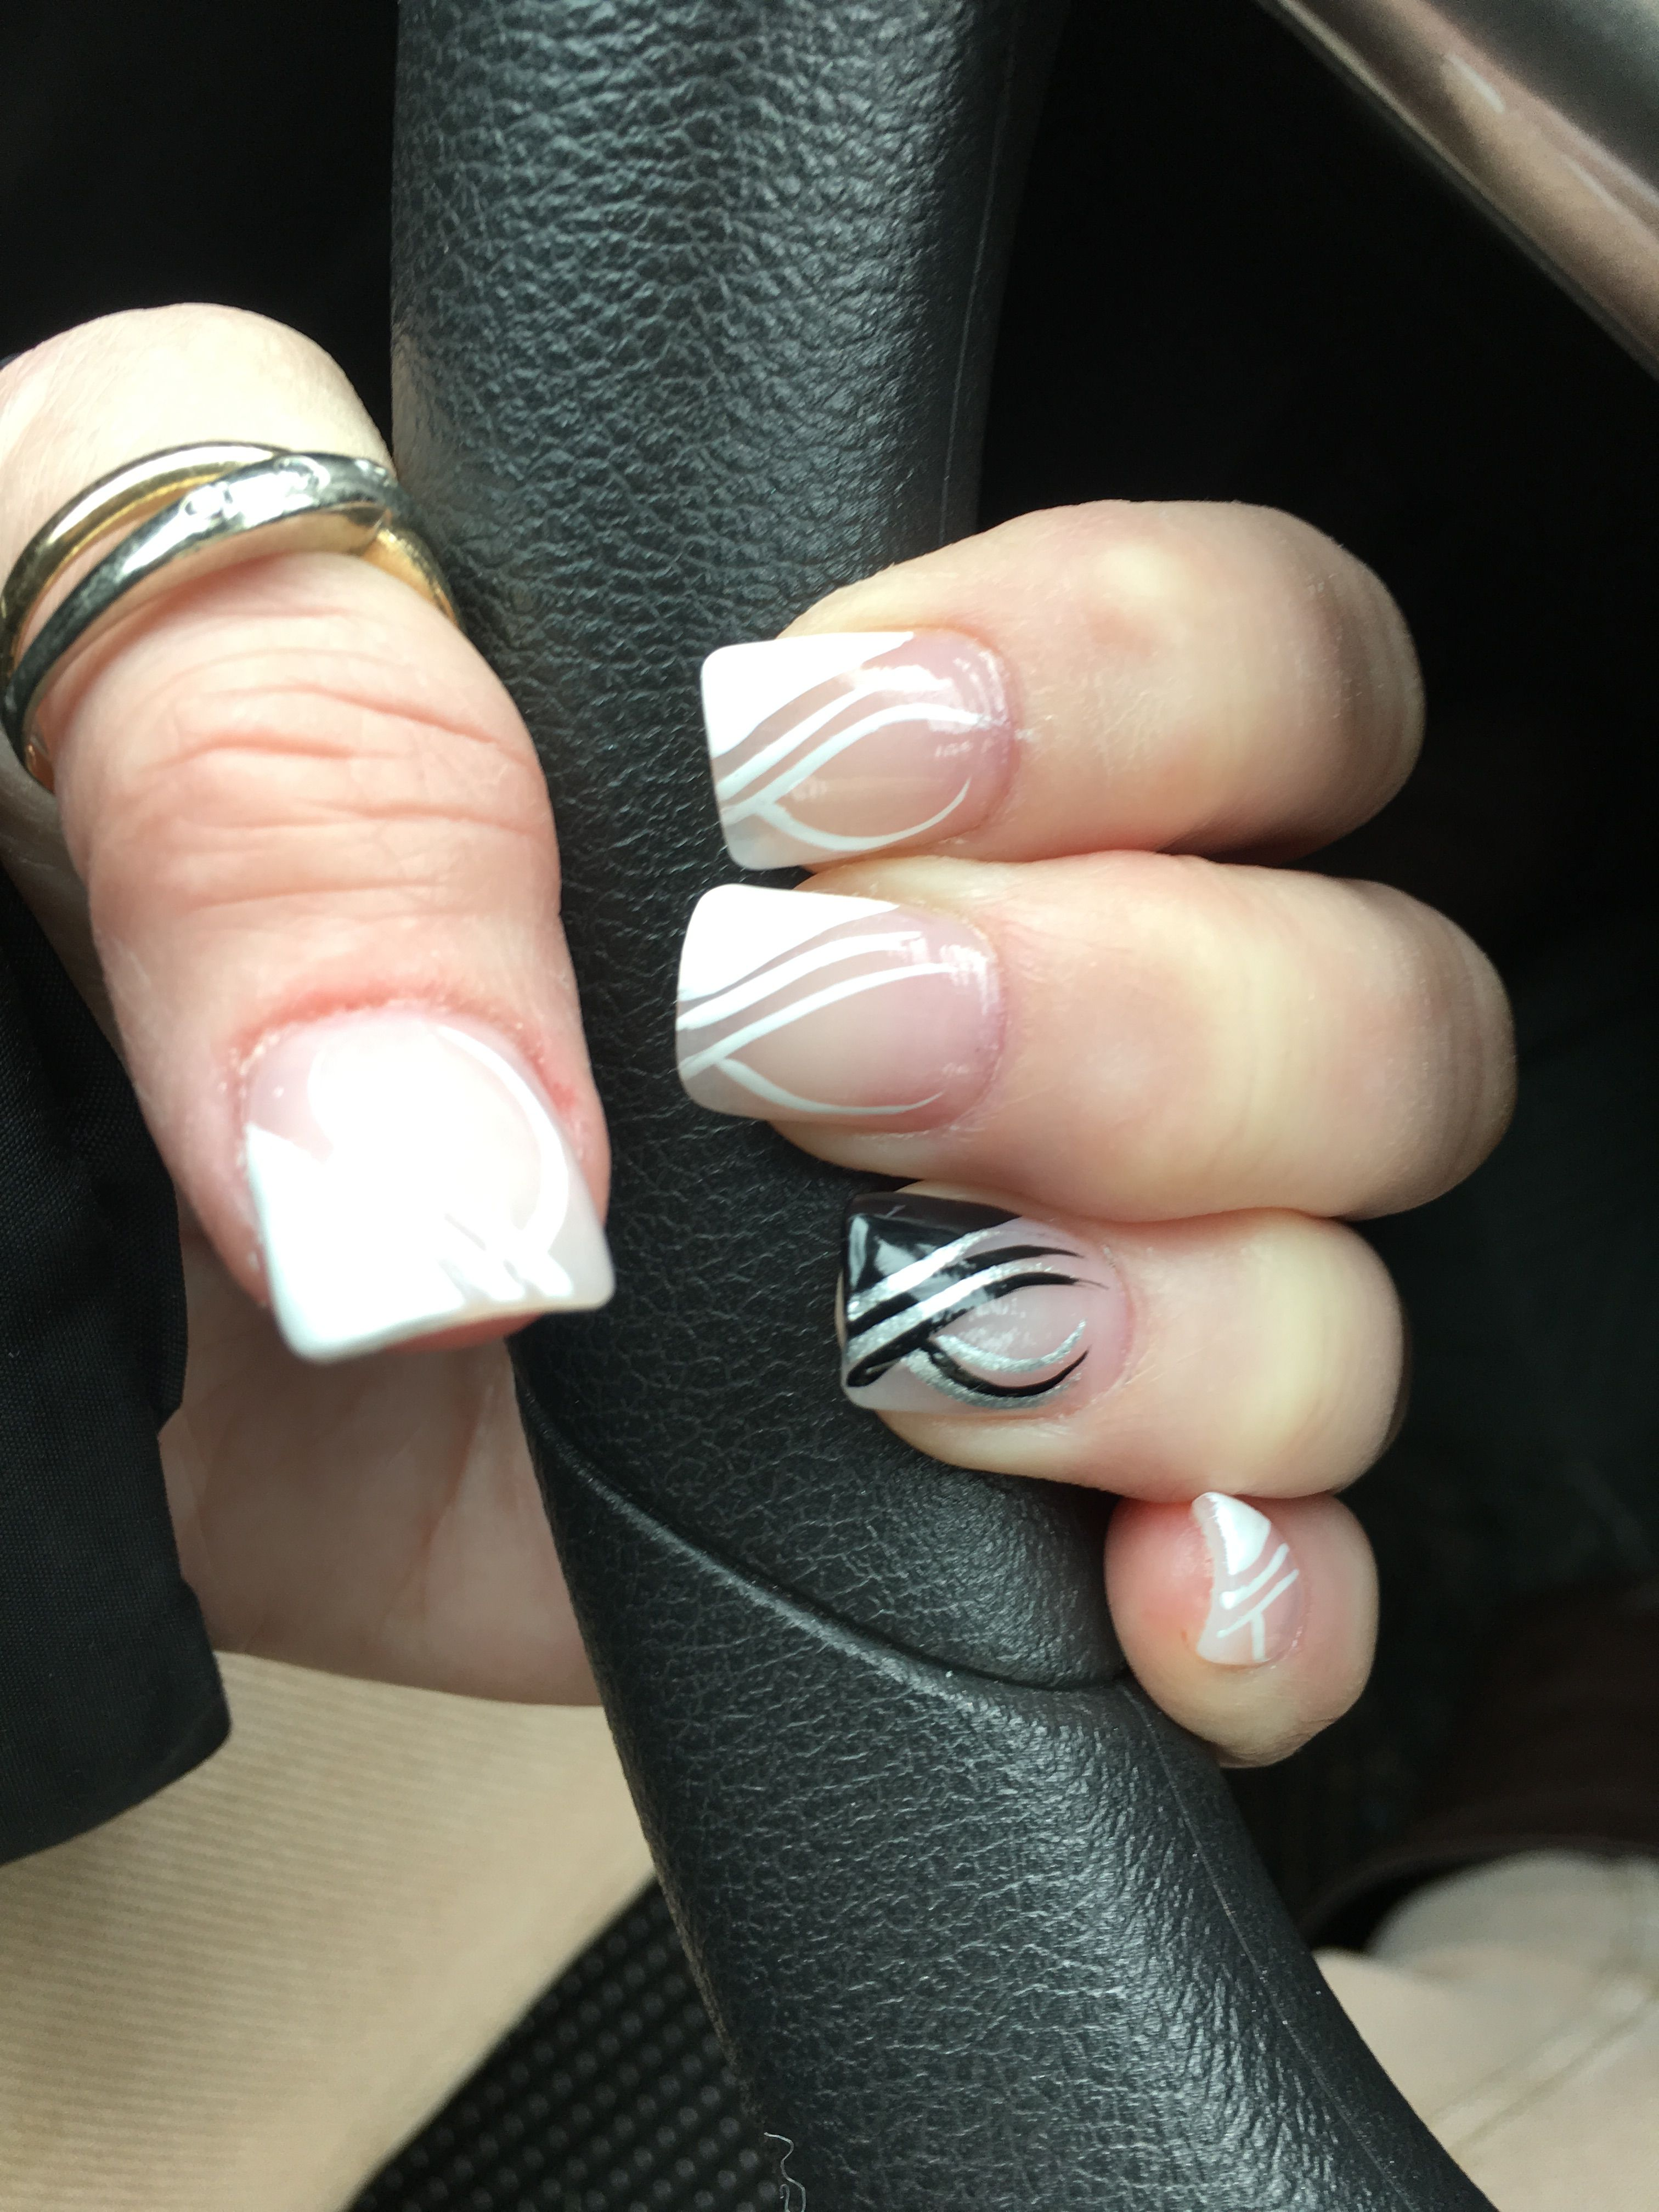 Fancy french with hire and black nail design french nail designs fancy french with hire and black nail design prinsesfo Choice Image